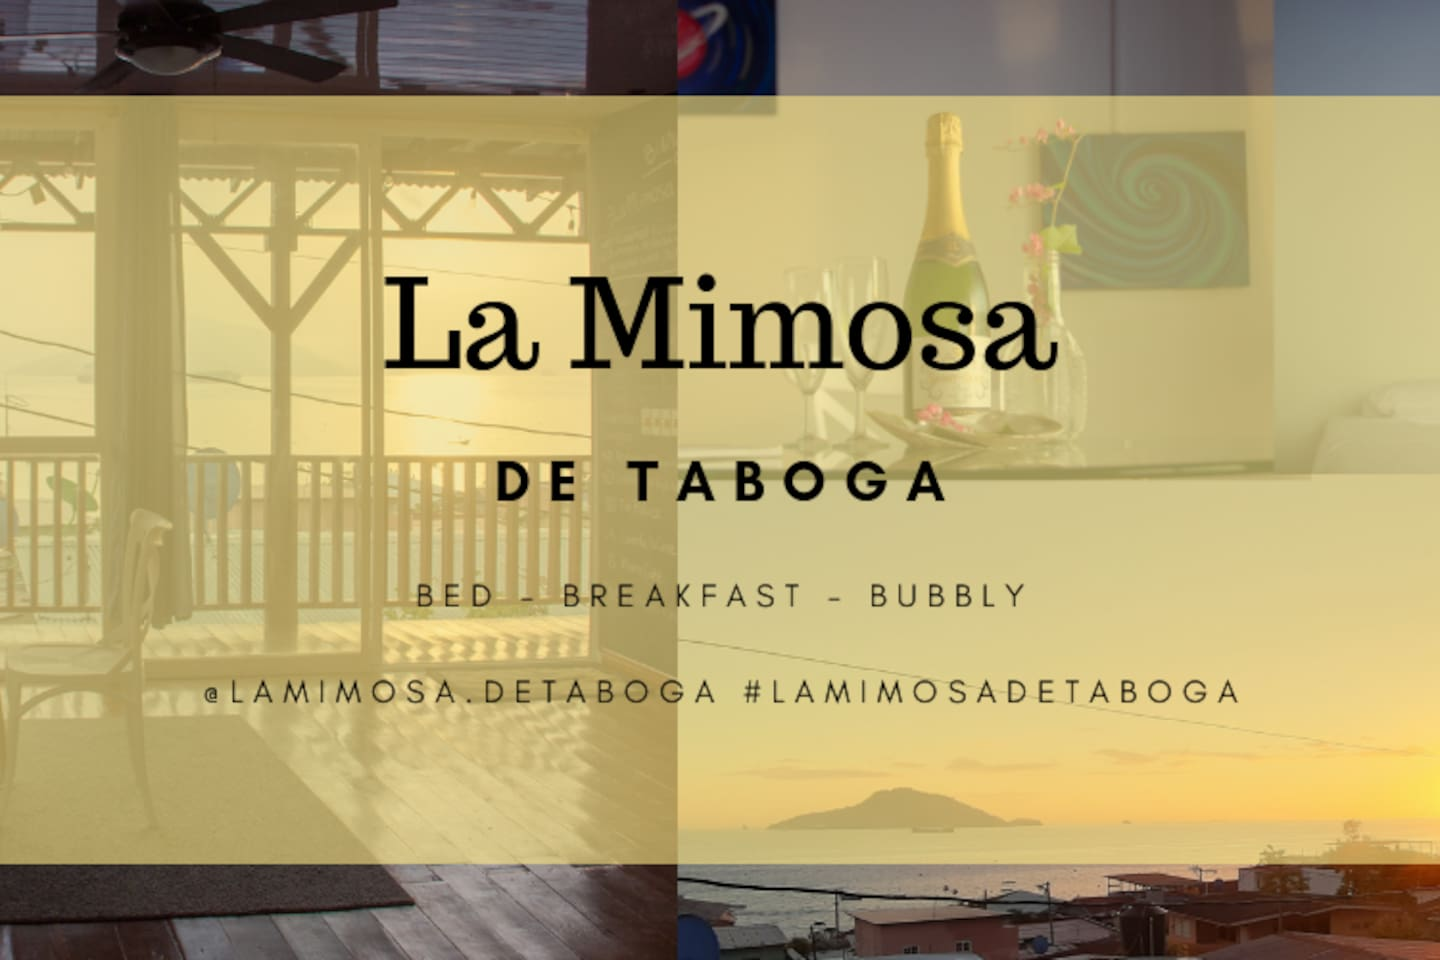 La Mimosa de Taboga is a hidden treasure in the heart of Tabogas town.  We are surrounded by banana trees, palms and fruit trees.   There are lots of vegetation and wild birds such as herons, talingos, hummingbirds and wild chickens.